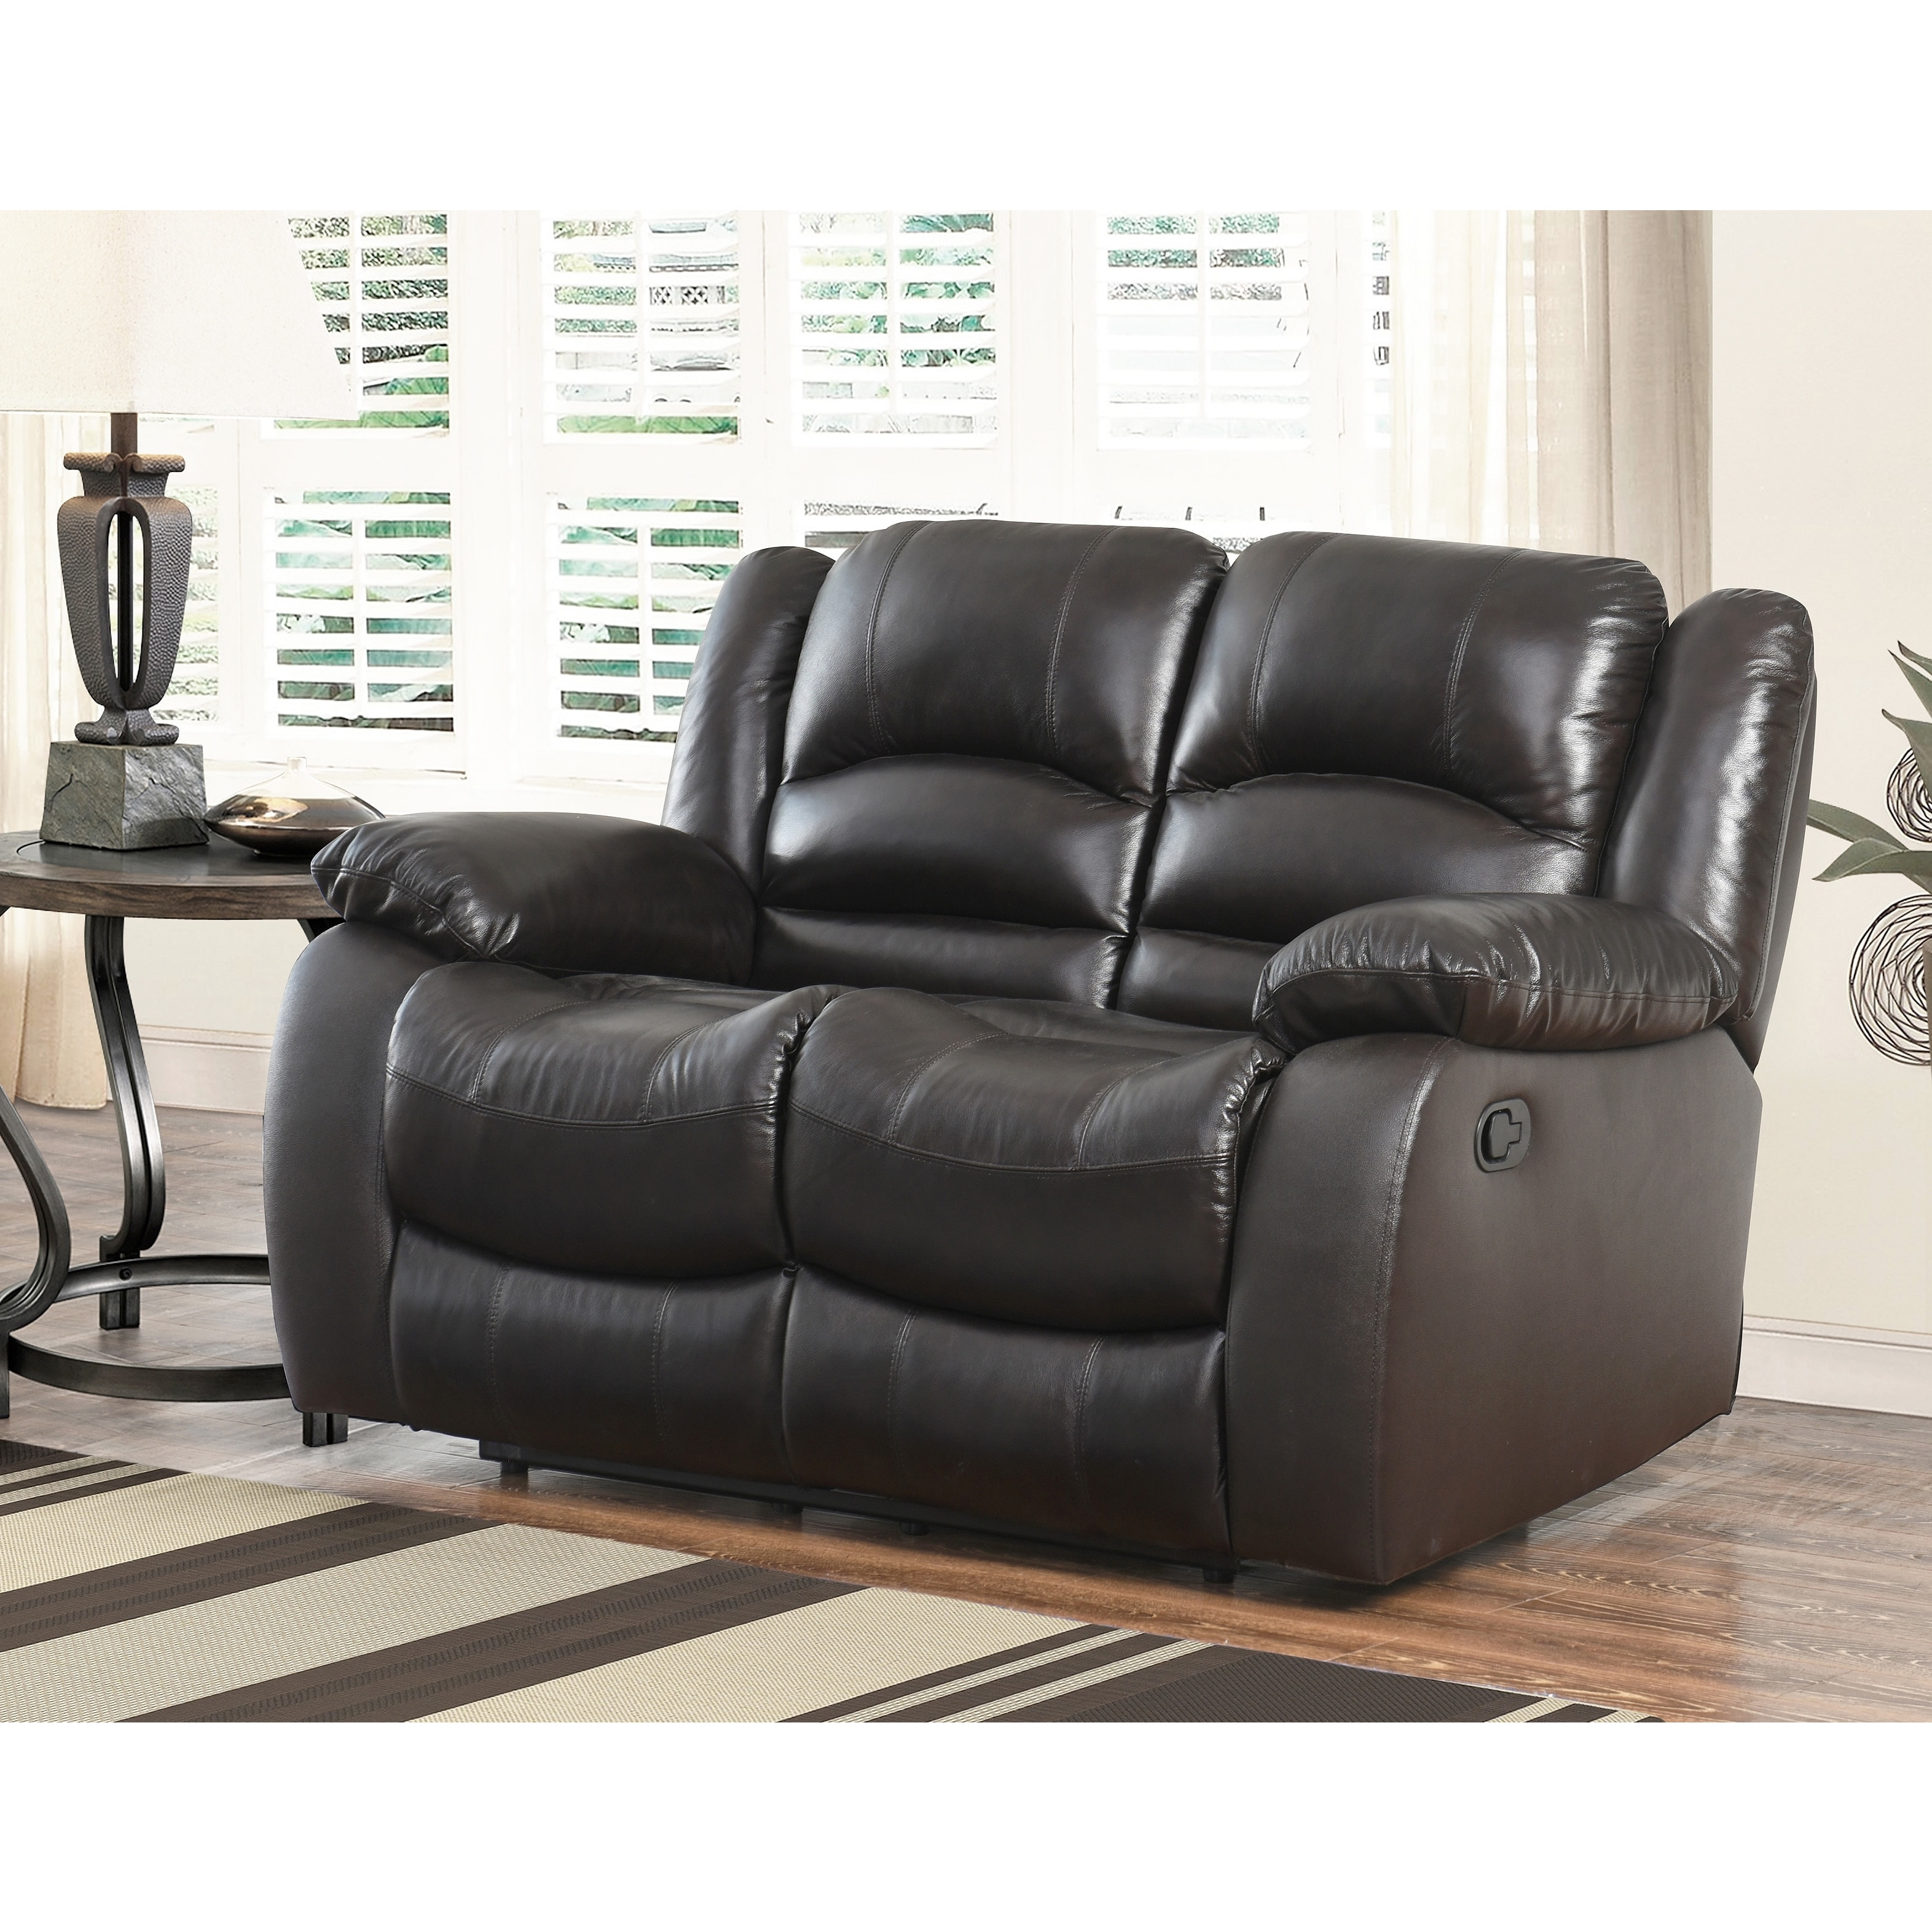 Abbyson Brownstone Top Grain Leather Reclining 3 Piece Living Room